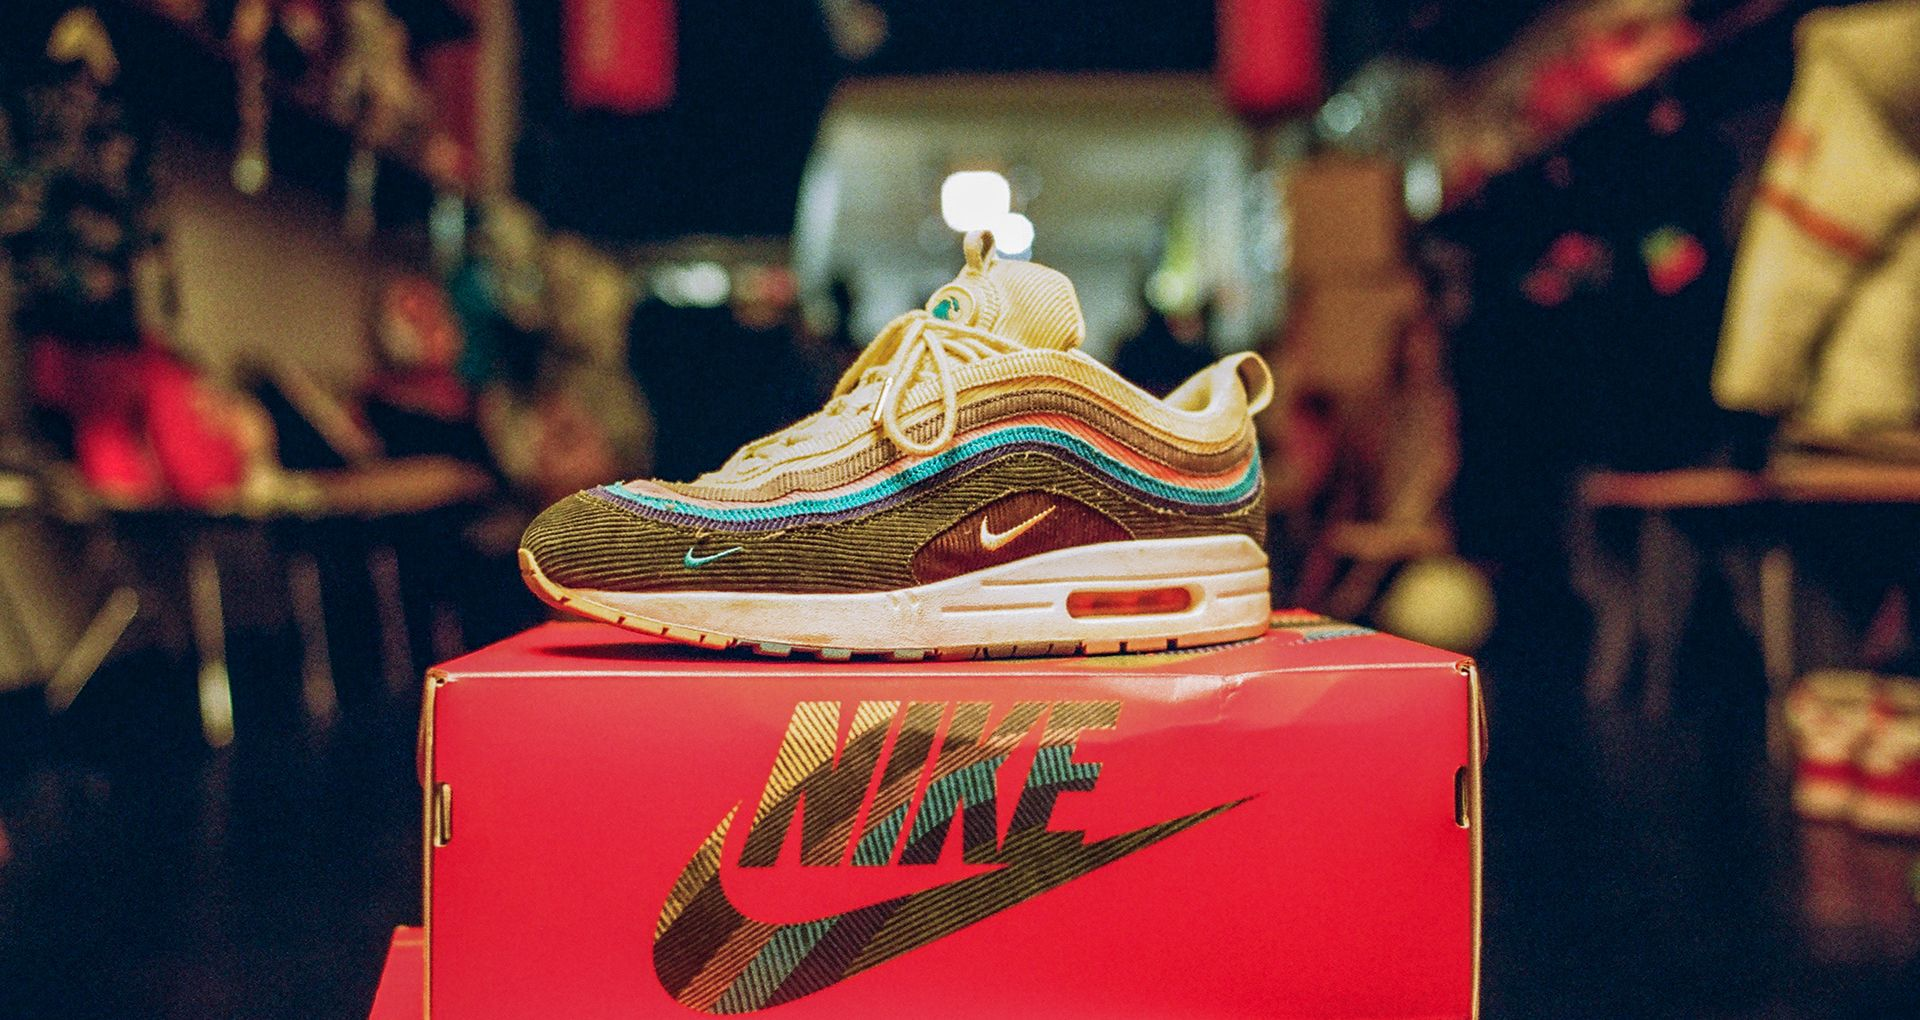 premium selection f6cd0 7253b Behind The Design: Air Max 1/97 Sean Wotherspoon. Nike⁠+ SNKRS